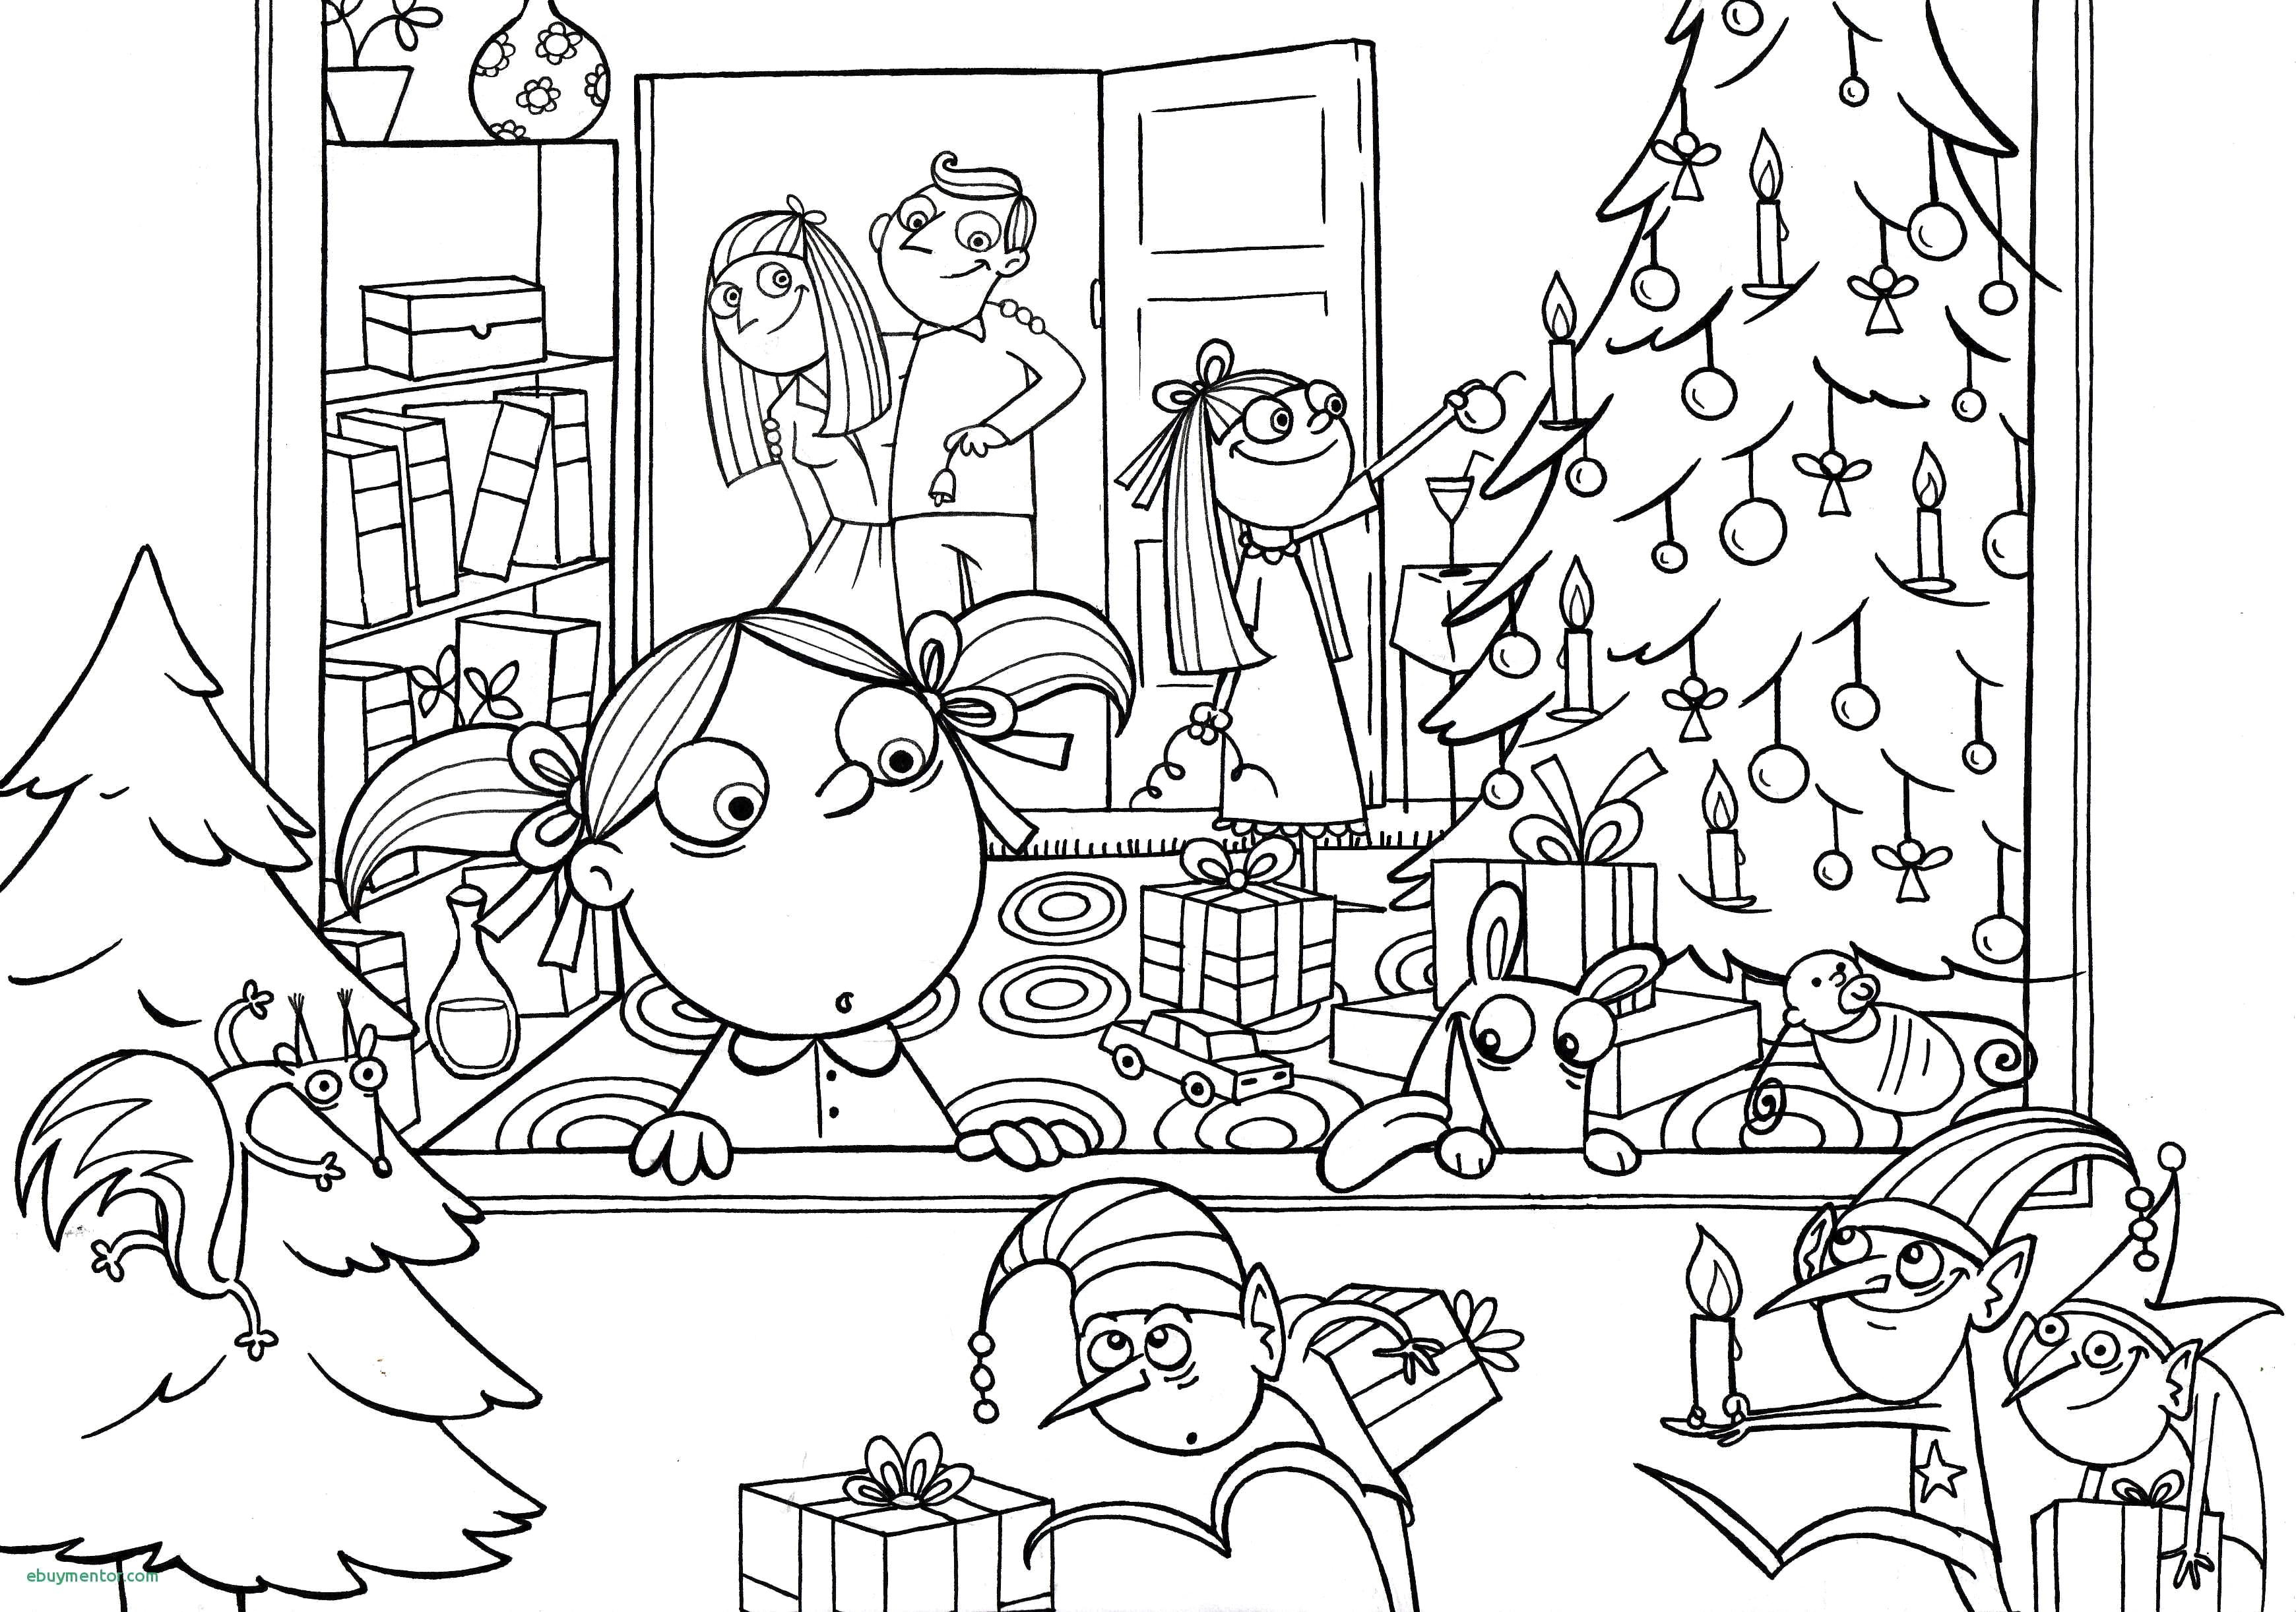 Detailed Christmas Coloring Pages Free Printable With Difficult For Adults Colouring